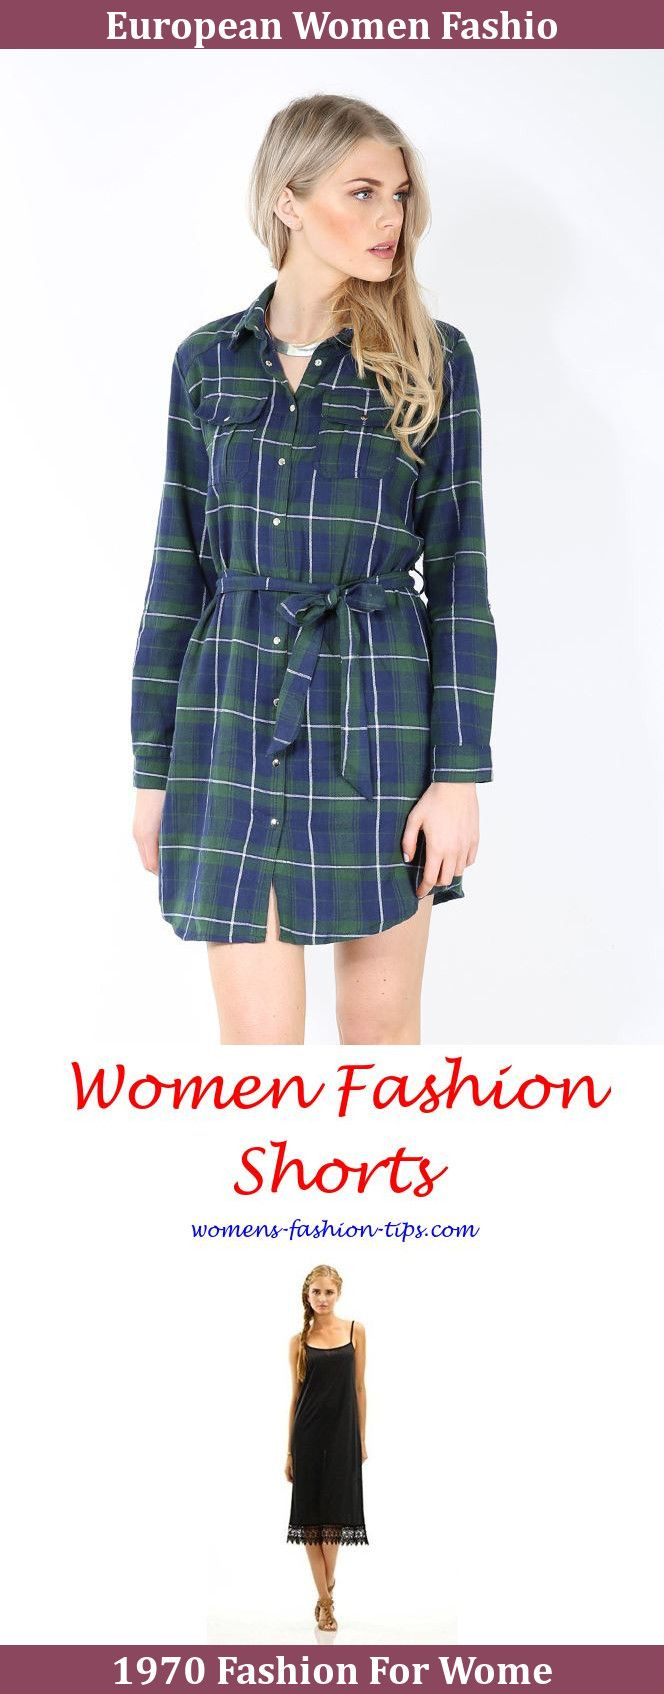 best discount womens clothing images on pinterest